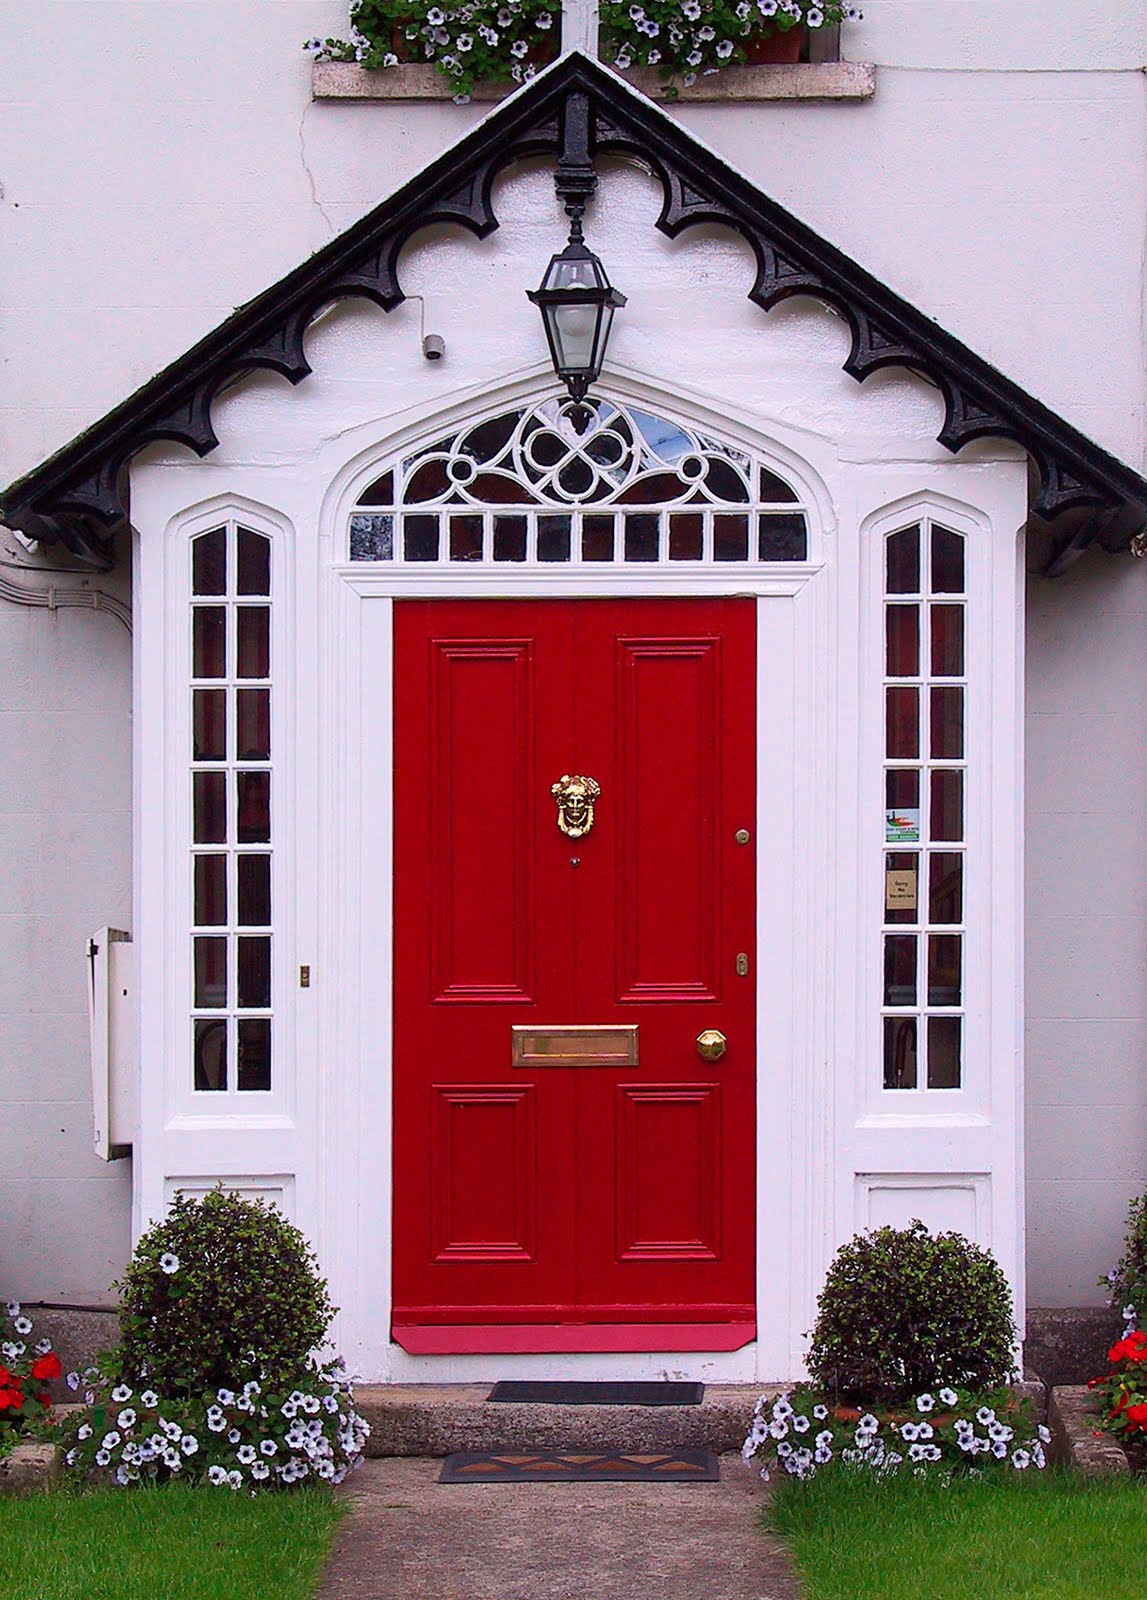 C b i d home decor and design home decor does your home Best red for front door